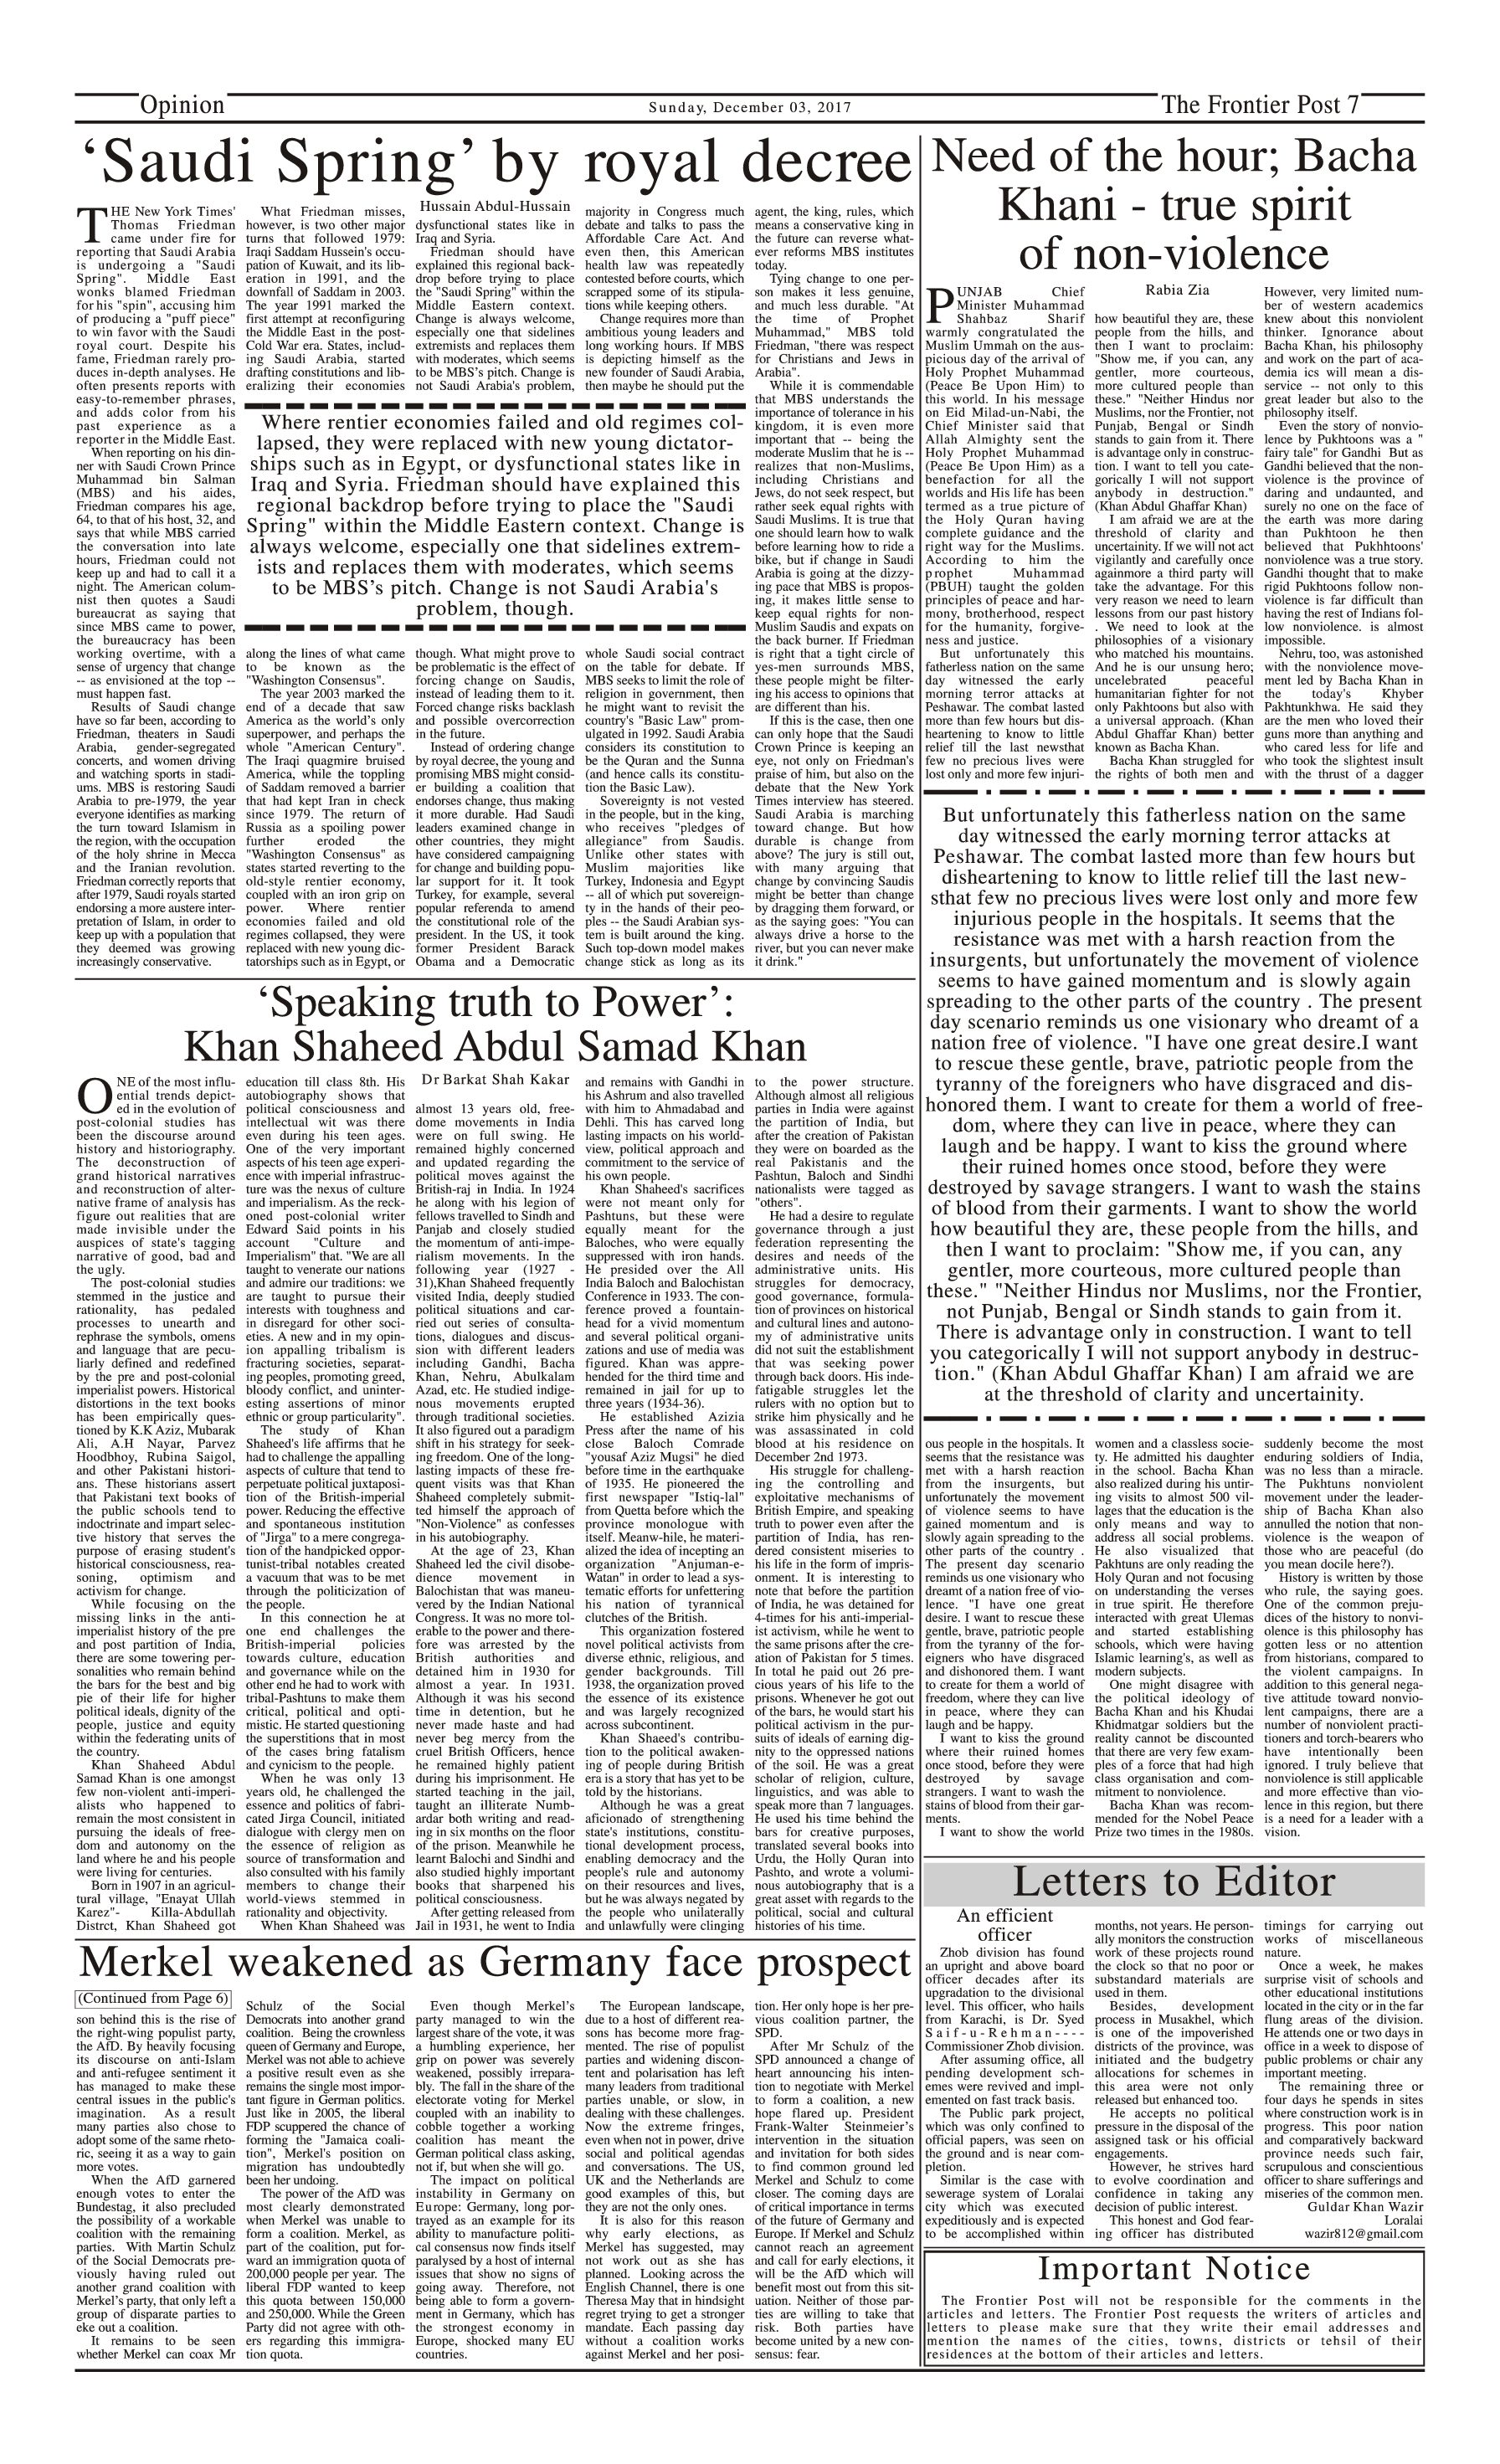 Opinion Page 3-12